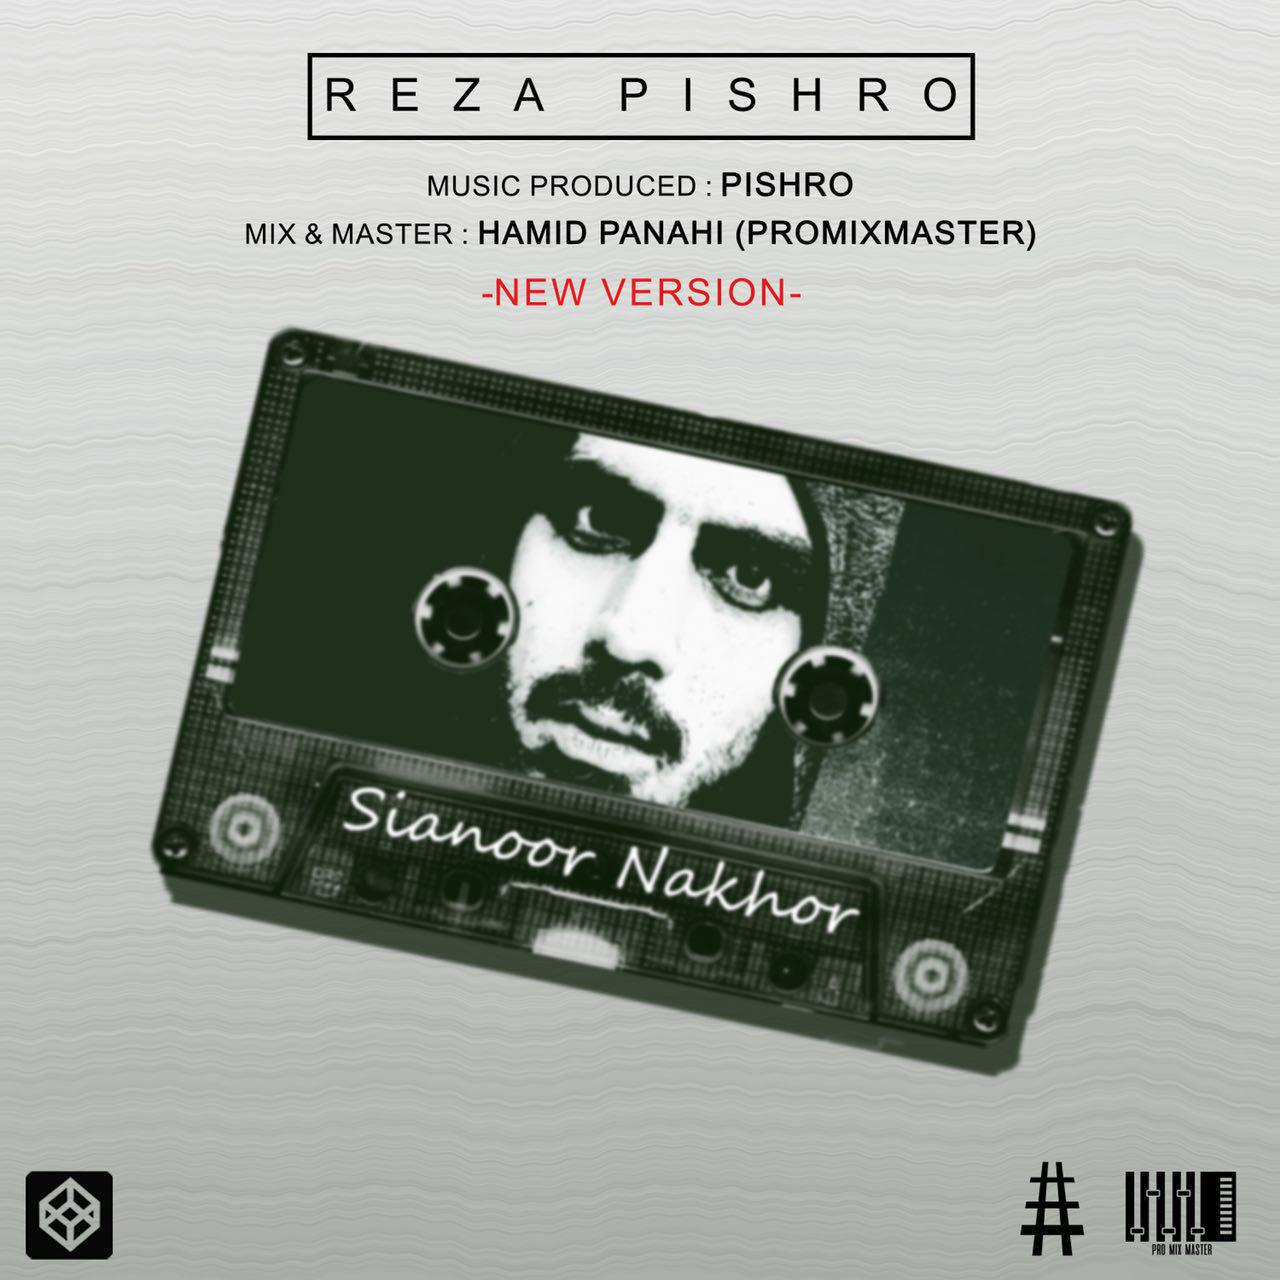 Reza Pishro - Sianoor Nakhor (New Version)